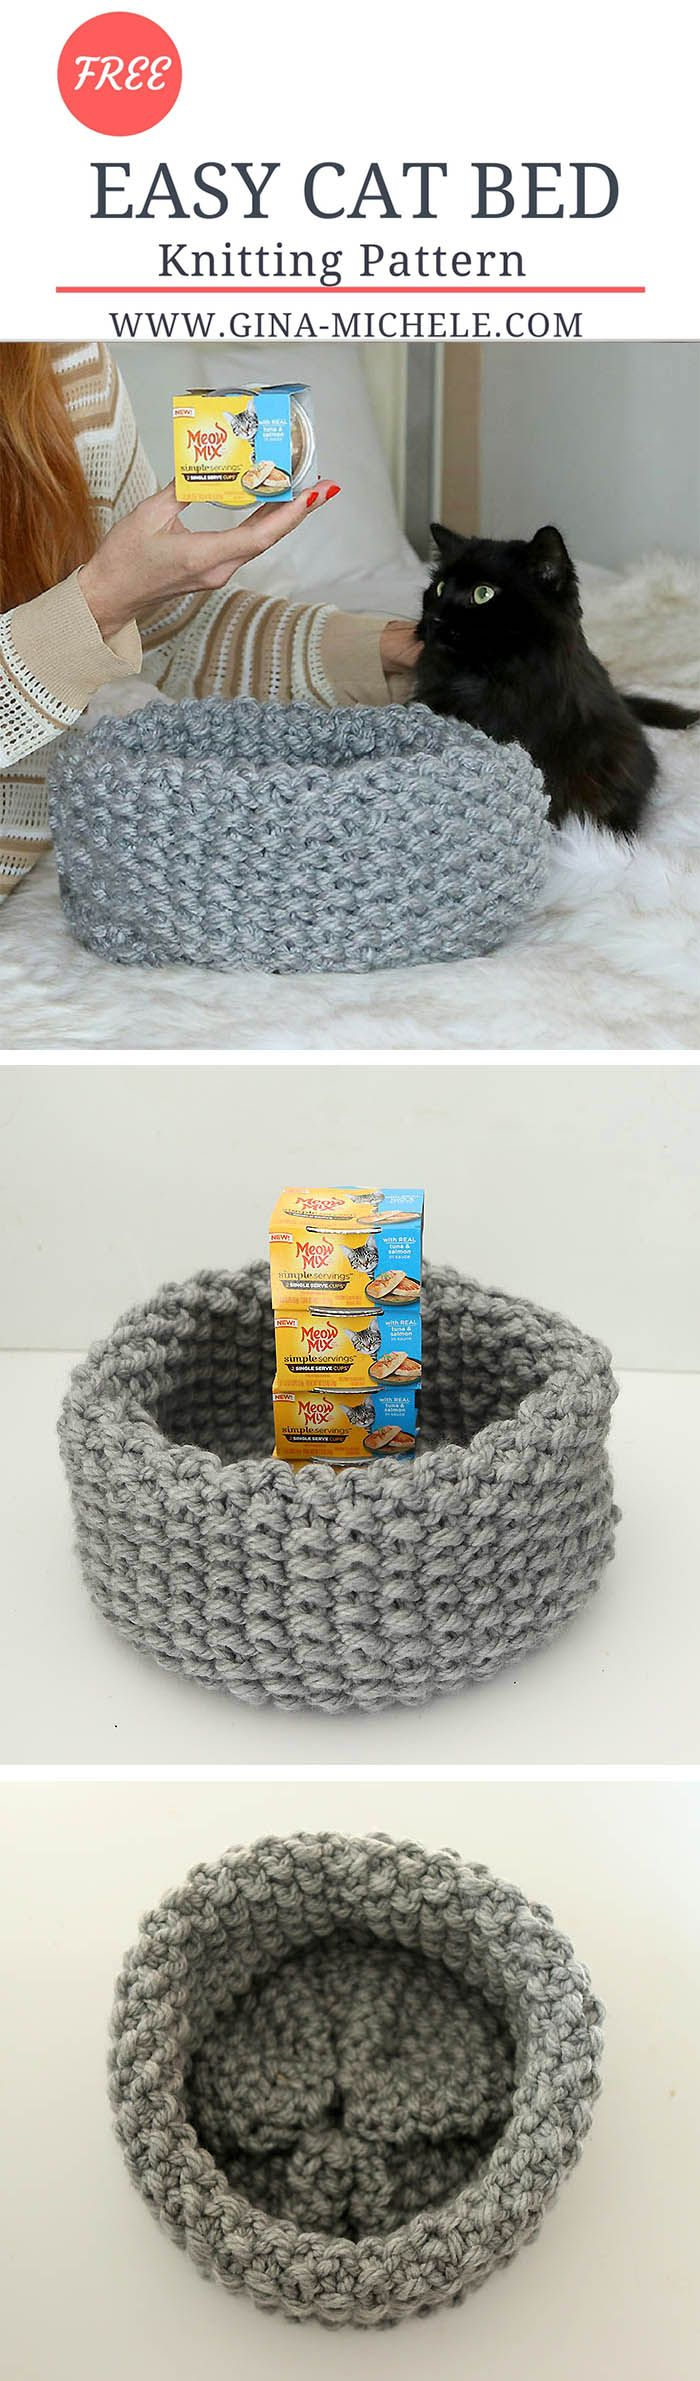 FREE knitting pattern for this Easy Cat Bed. It's knit on straight needles so it's perfect for beginners! #MeowMixatTarget @Target AD